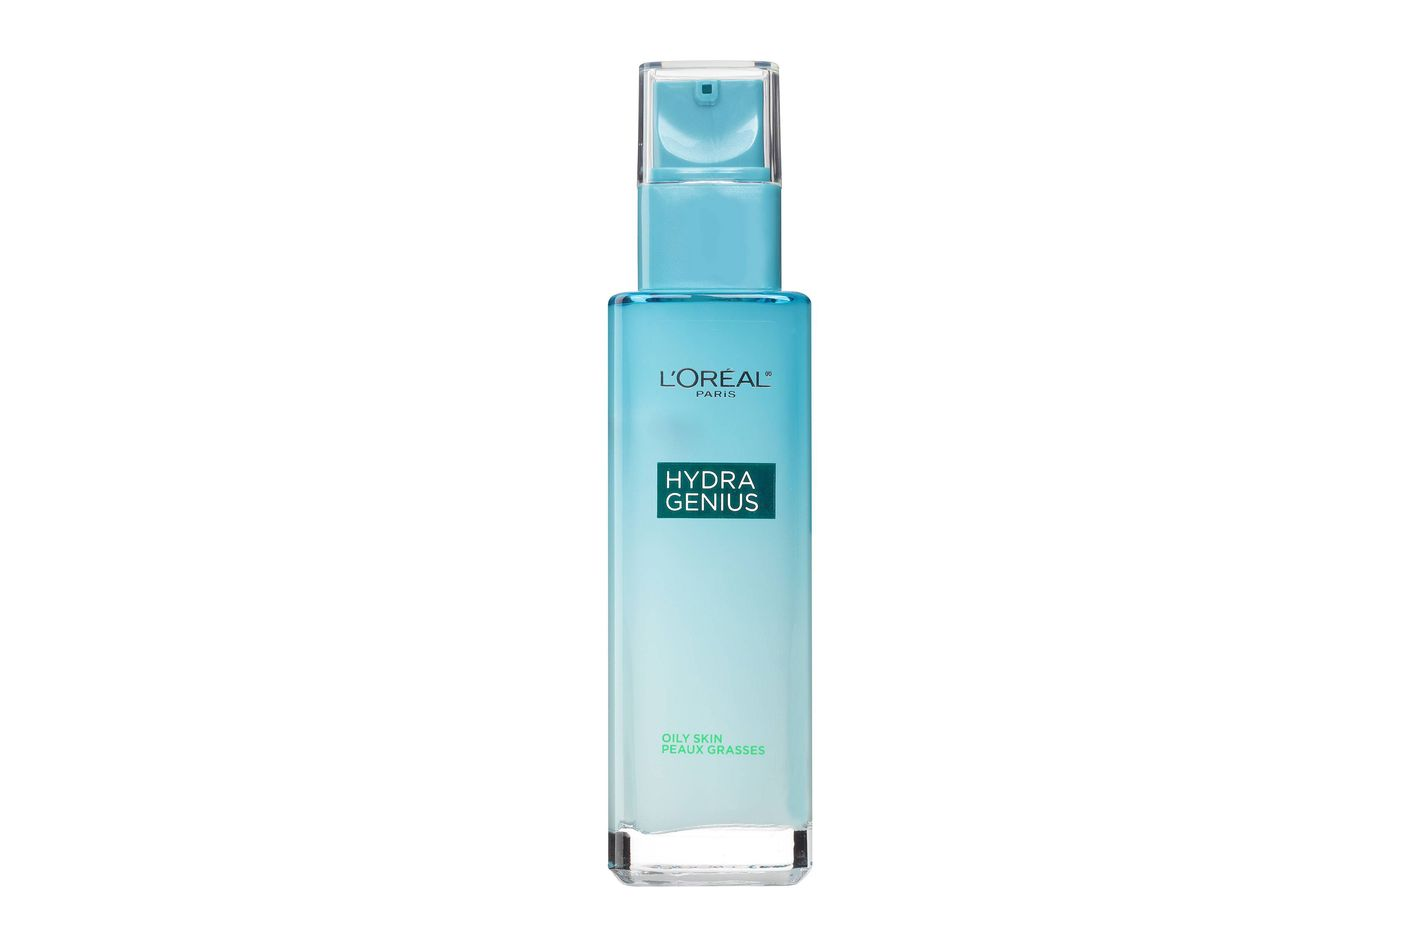 L'Oréal Paris Hydra Genius Mattifying Water